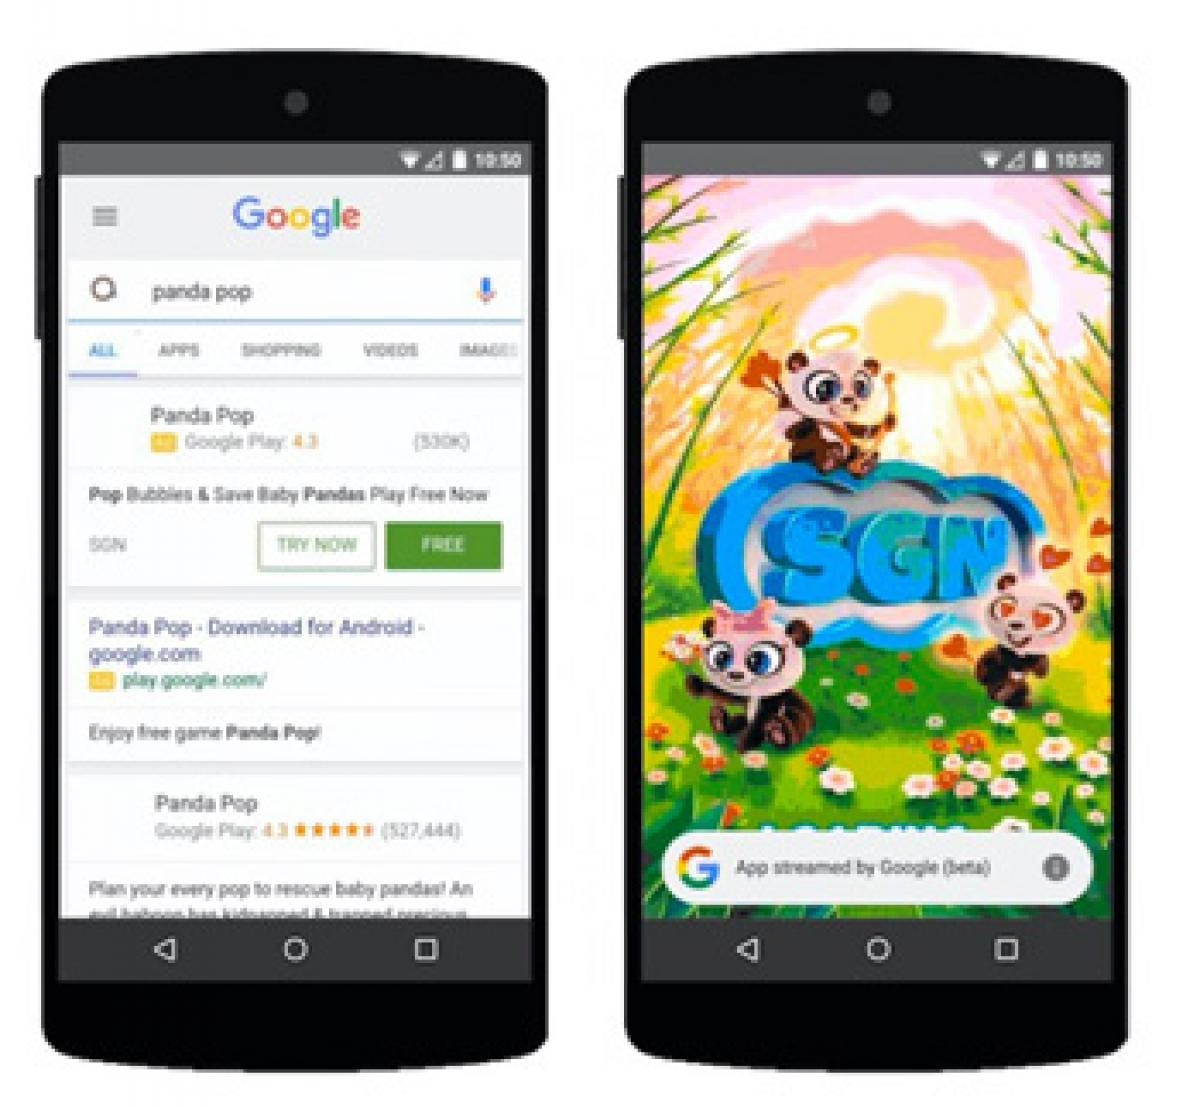 Google will soon let you try Android games in search results